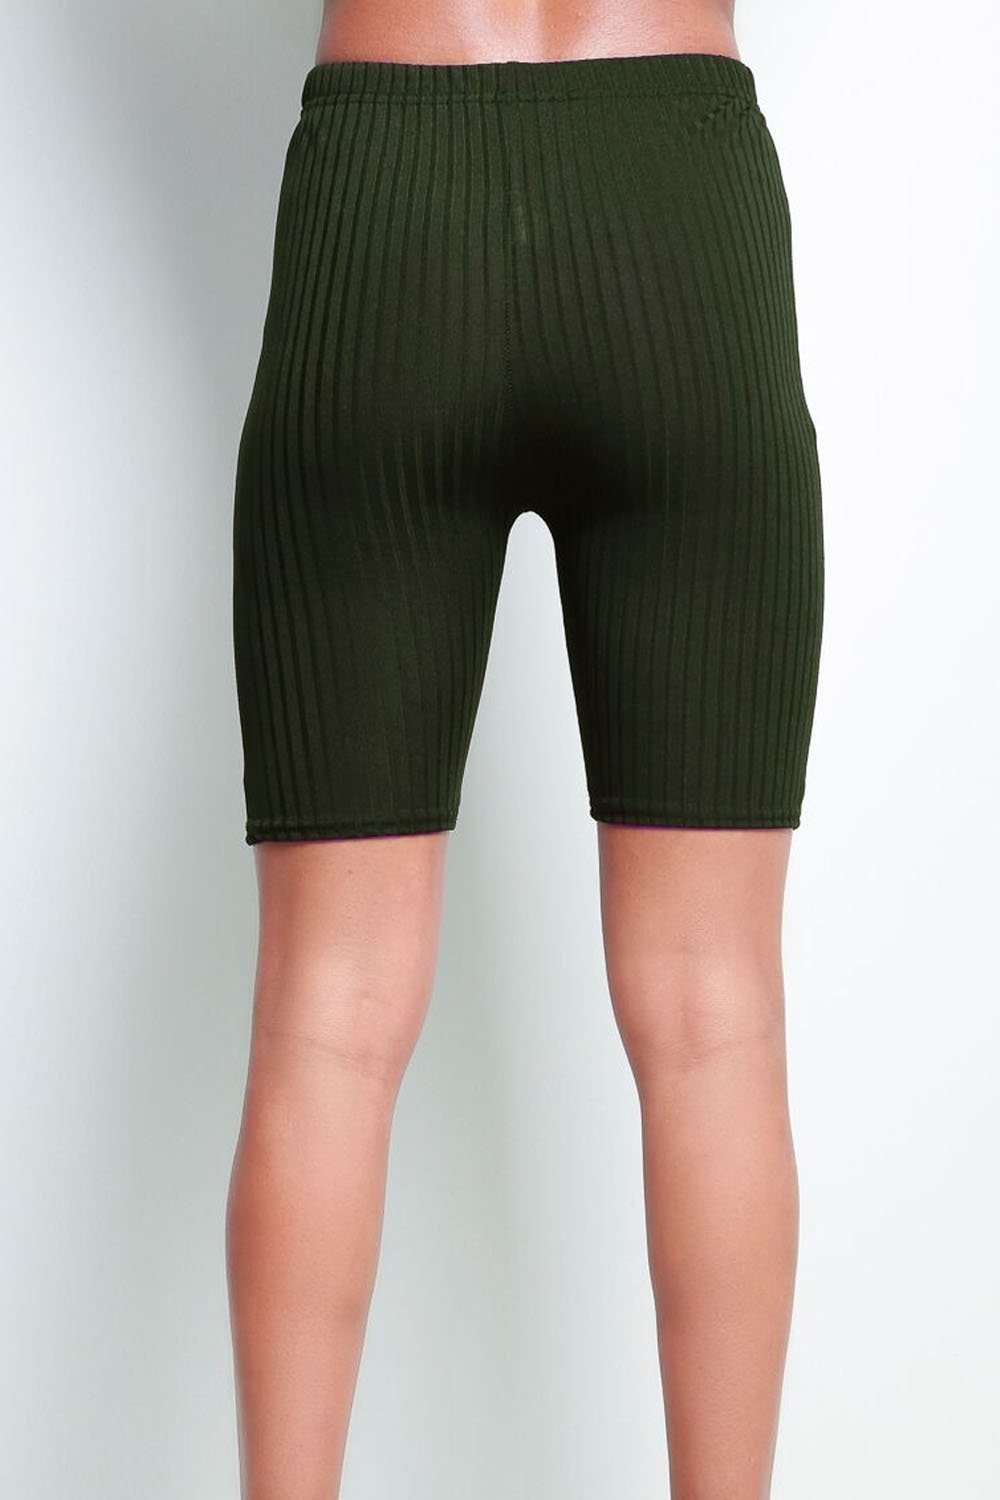 Callie High Waisted Ribbed Cycling Shorts - bejealous-com